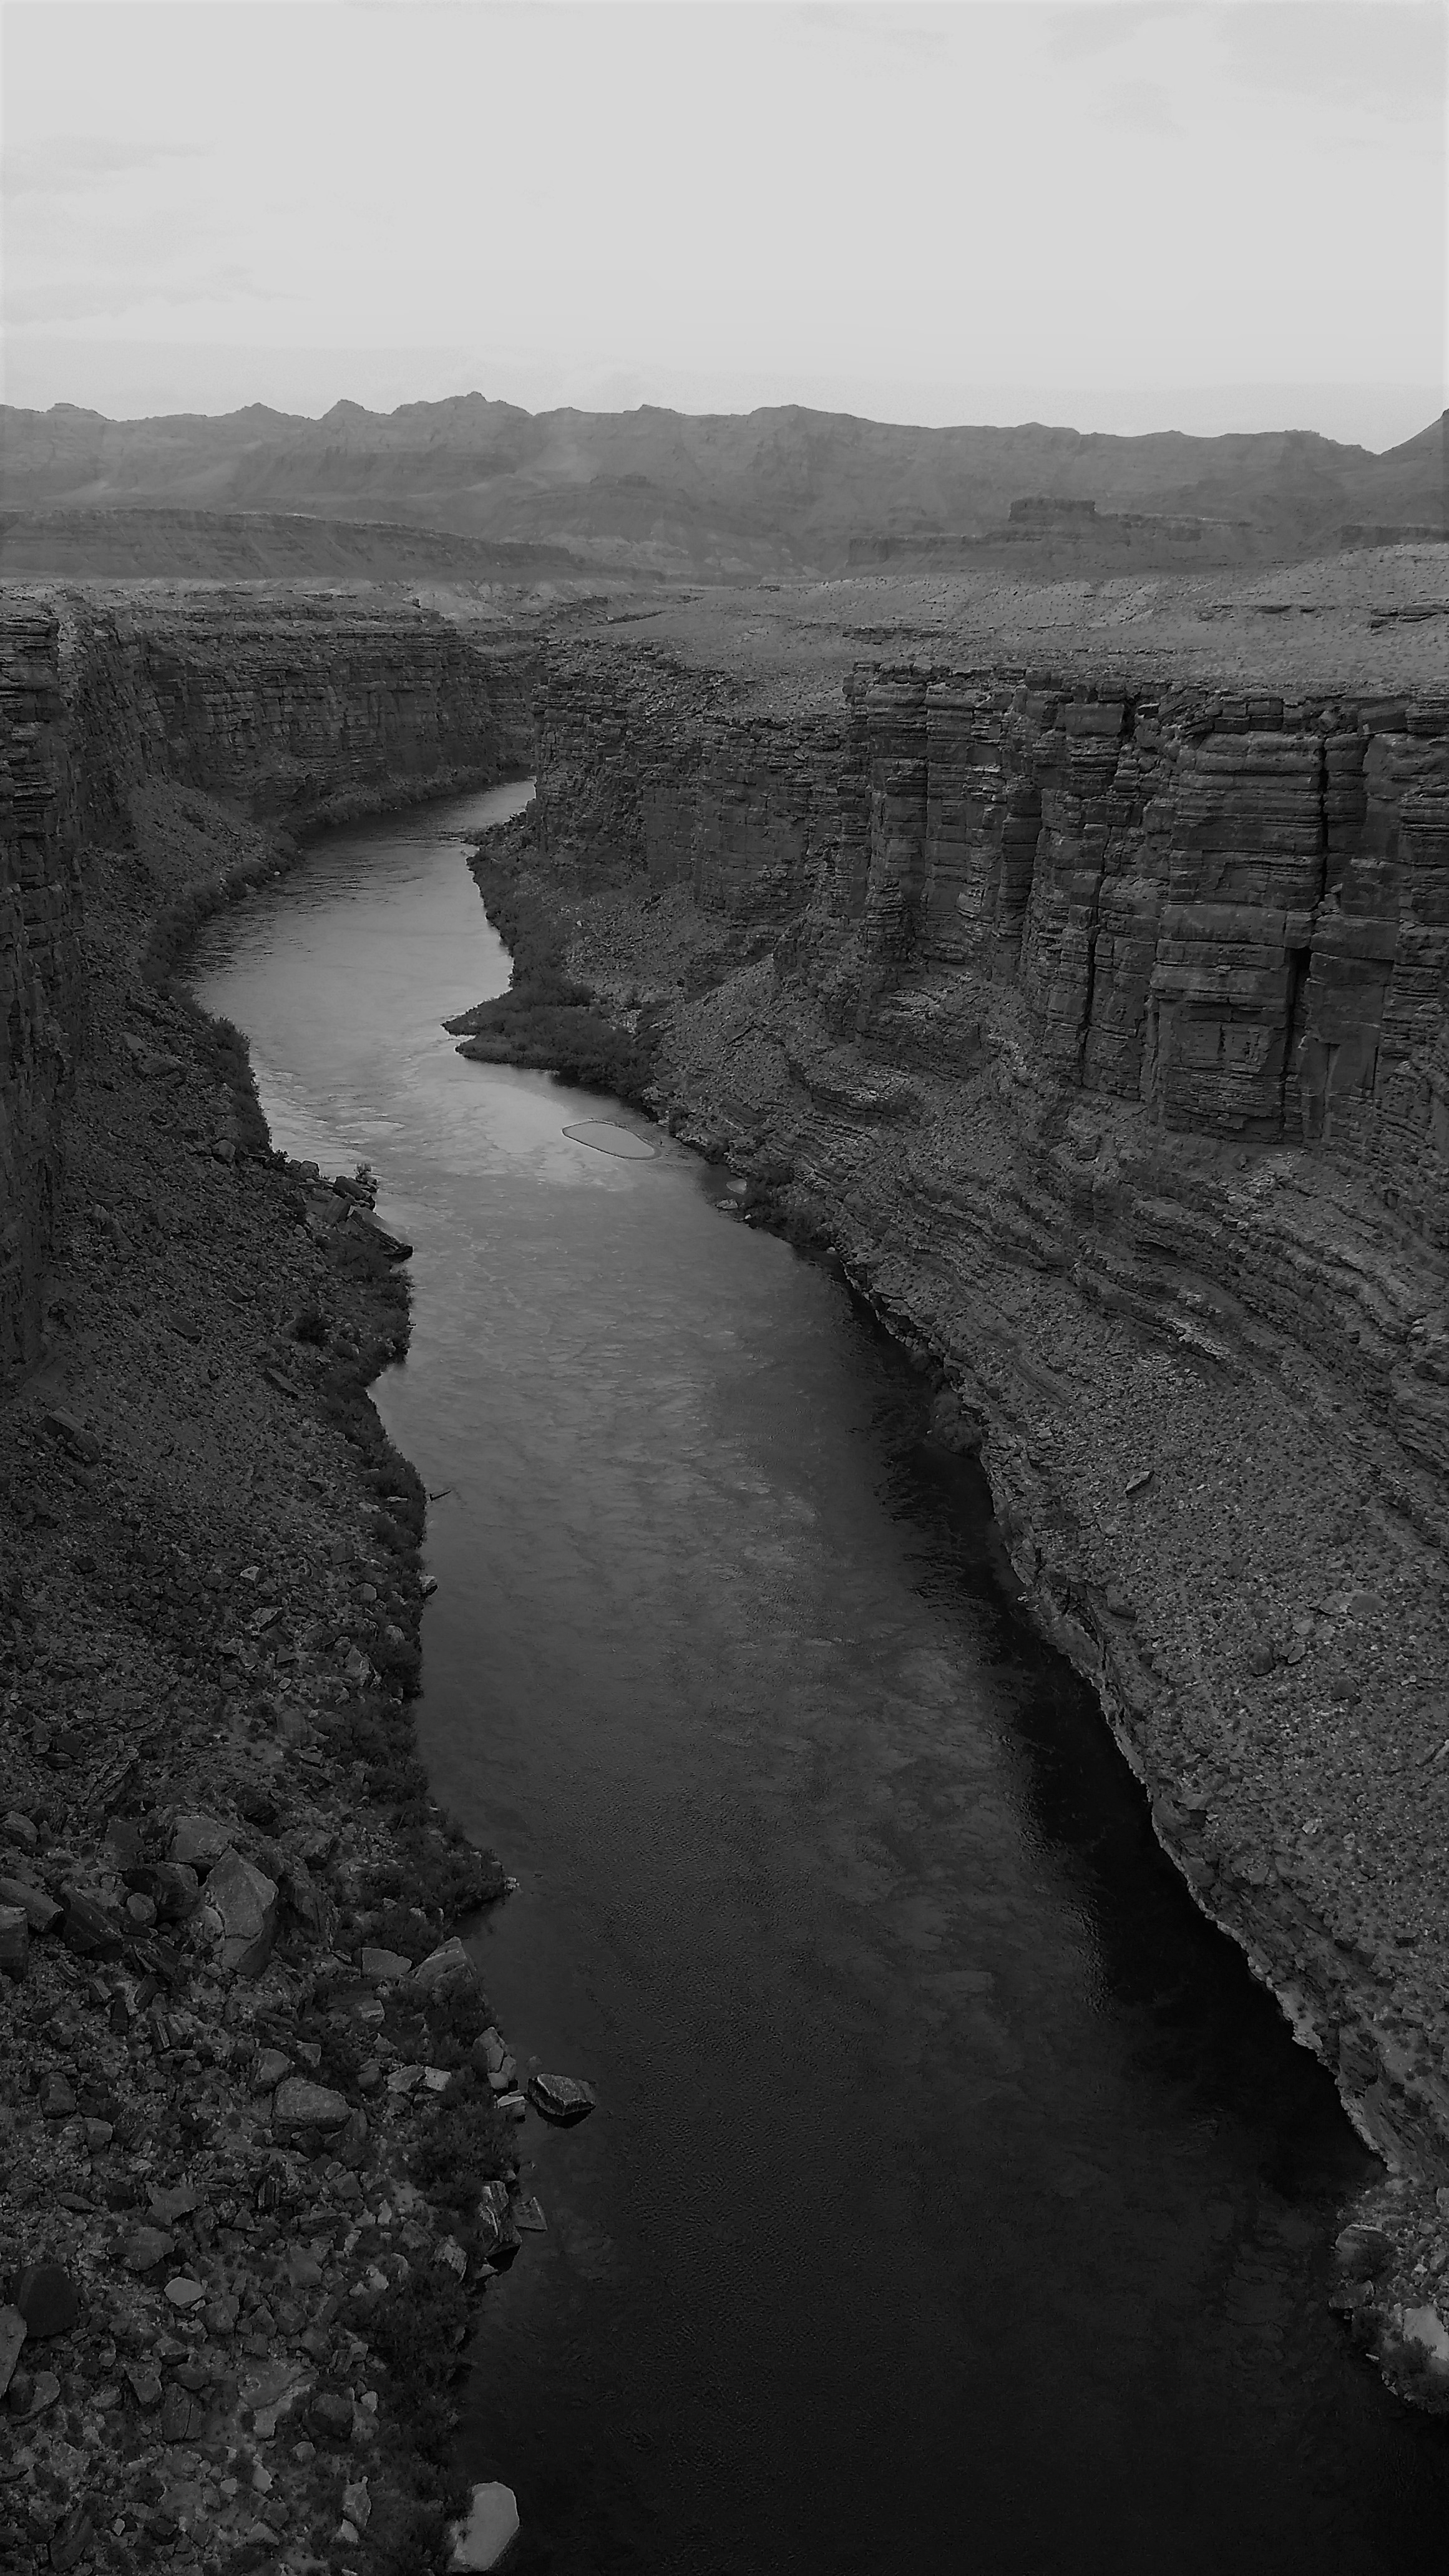 Colorado_River_Credit_Matt_Clark.jpg